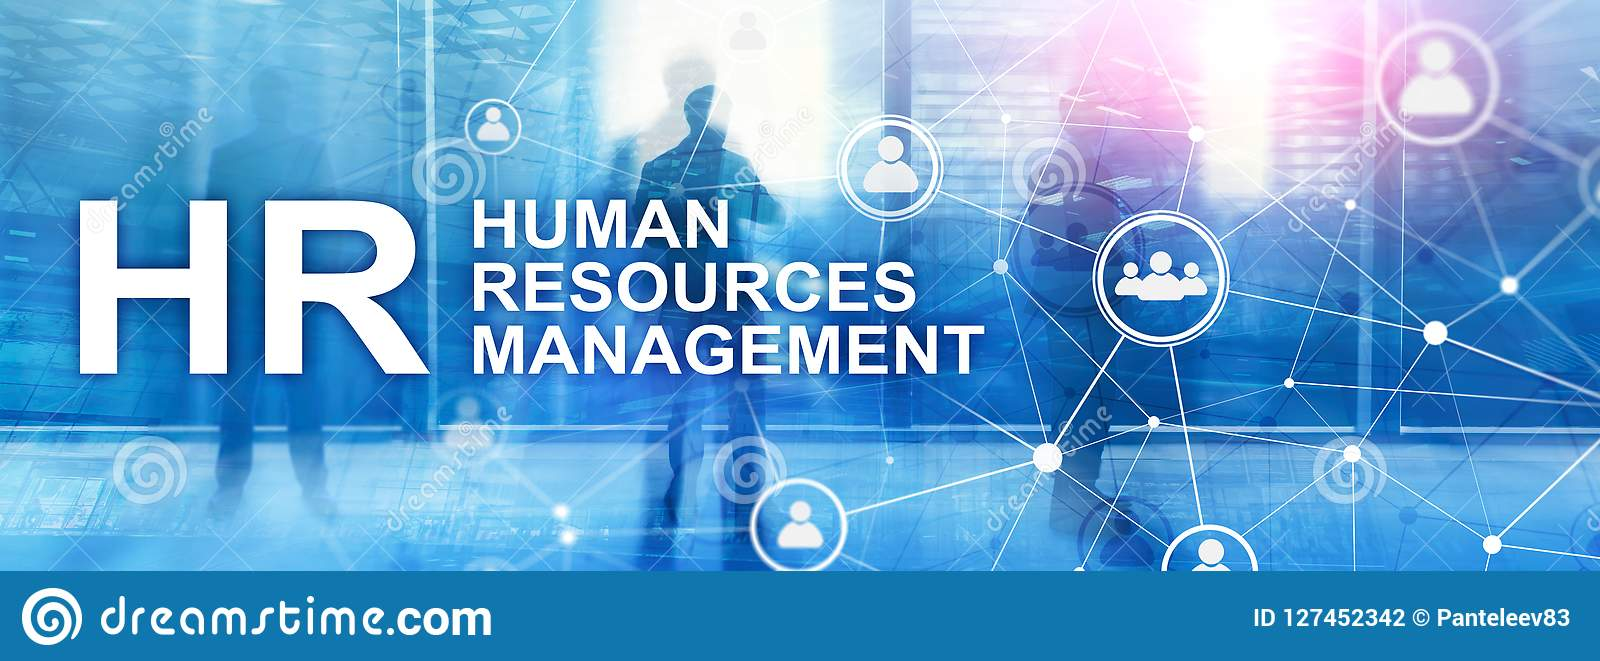 Human resource management, HR, Team Building and recruitment concept on blurred background